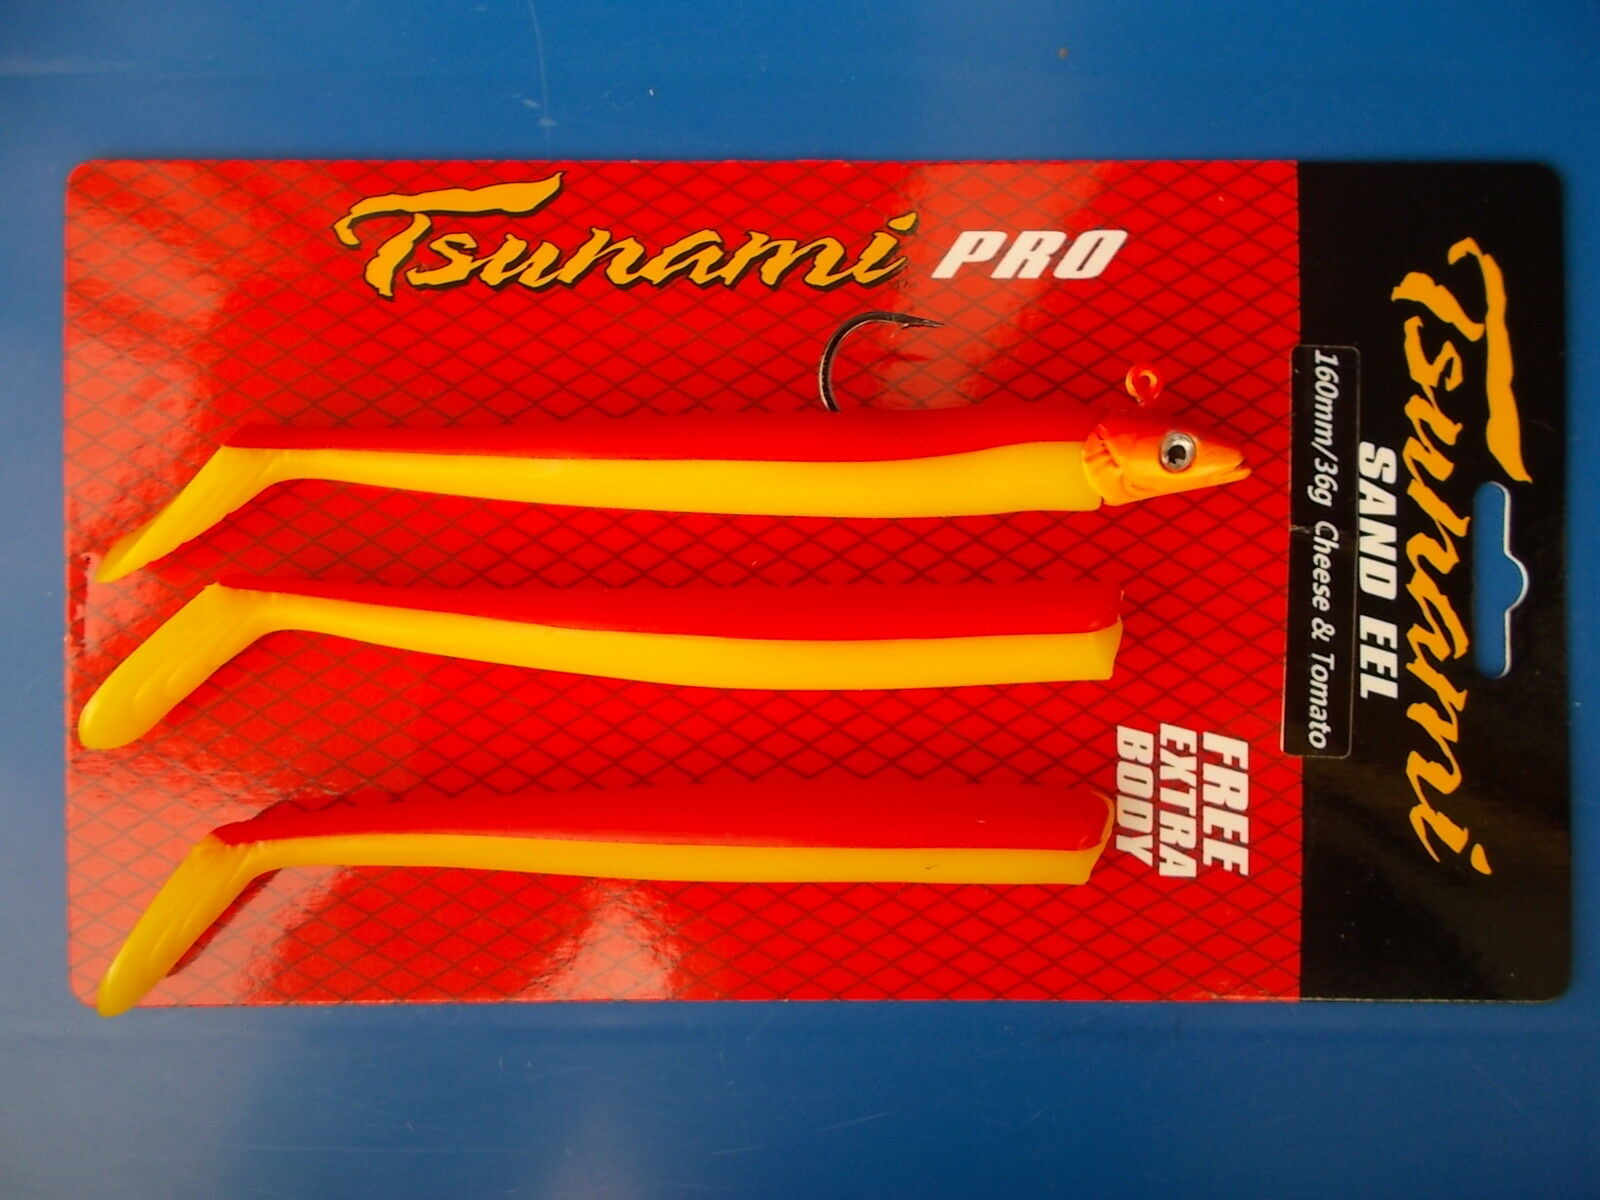 Tsunami Pro sand eel FISHING LURE 160mm/36g (FROMAGE tomate) & tomate) (FROMAGE c3439b